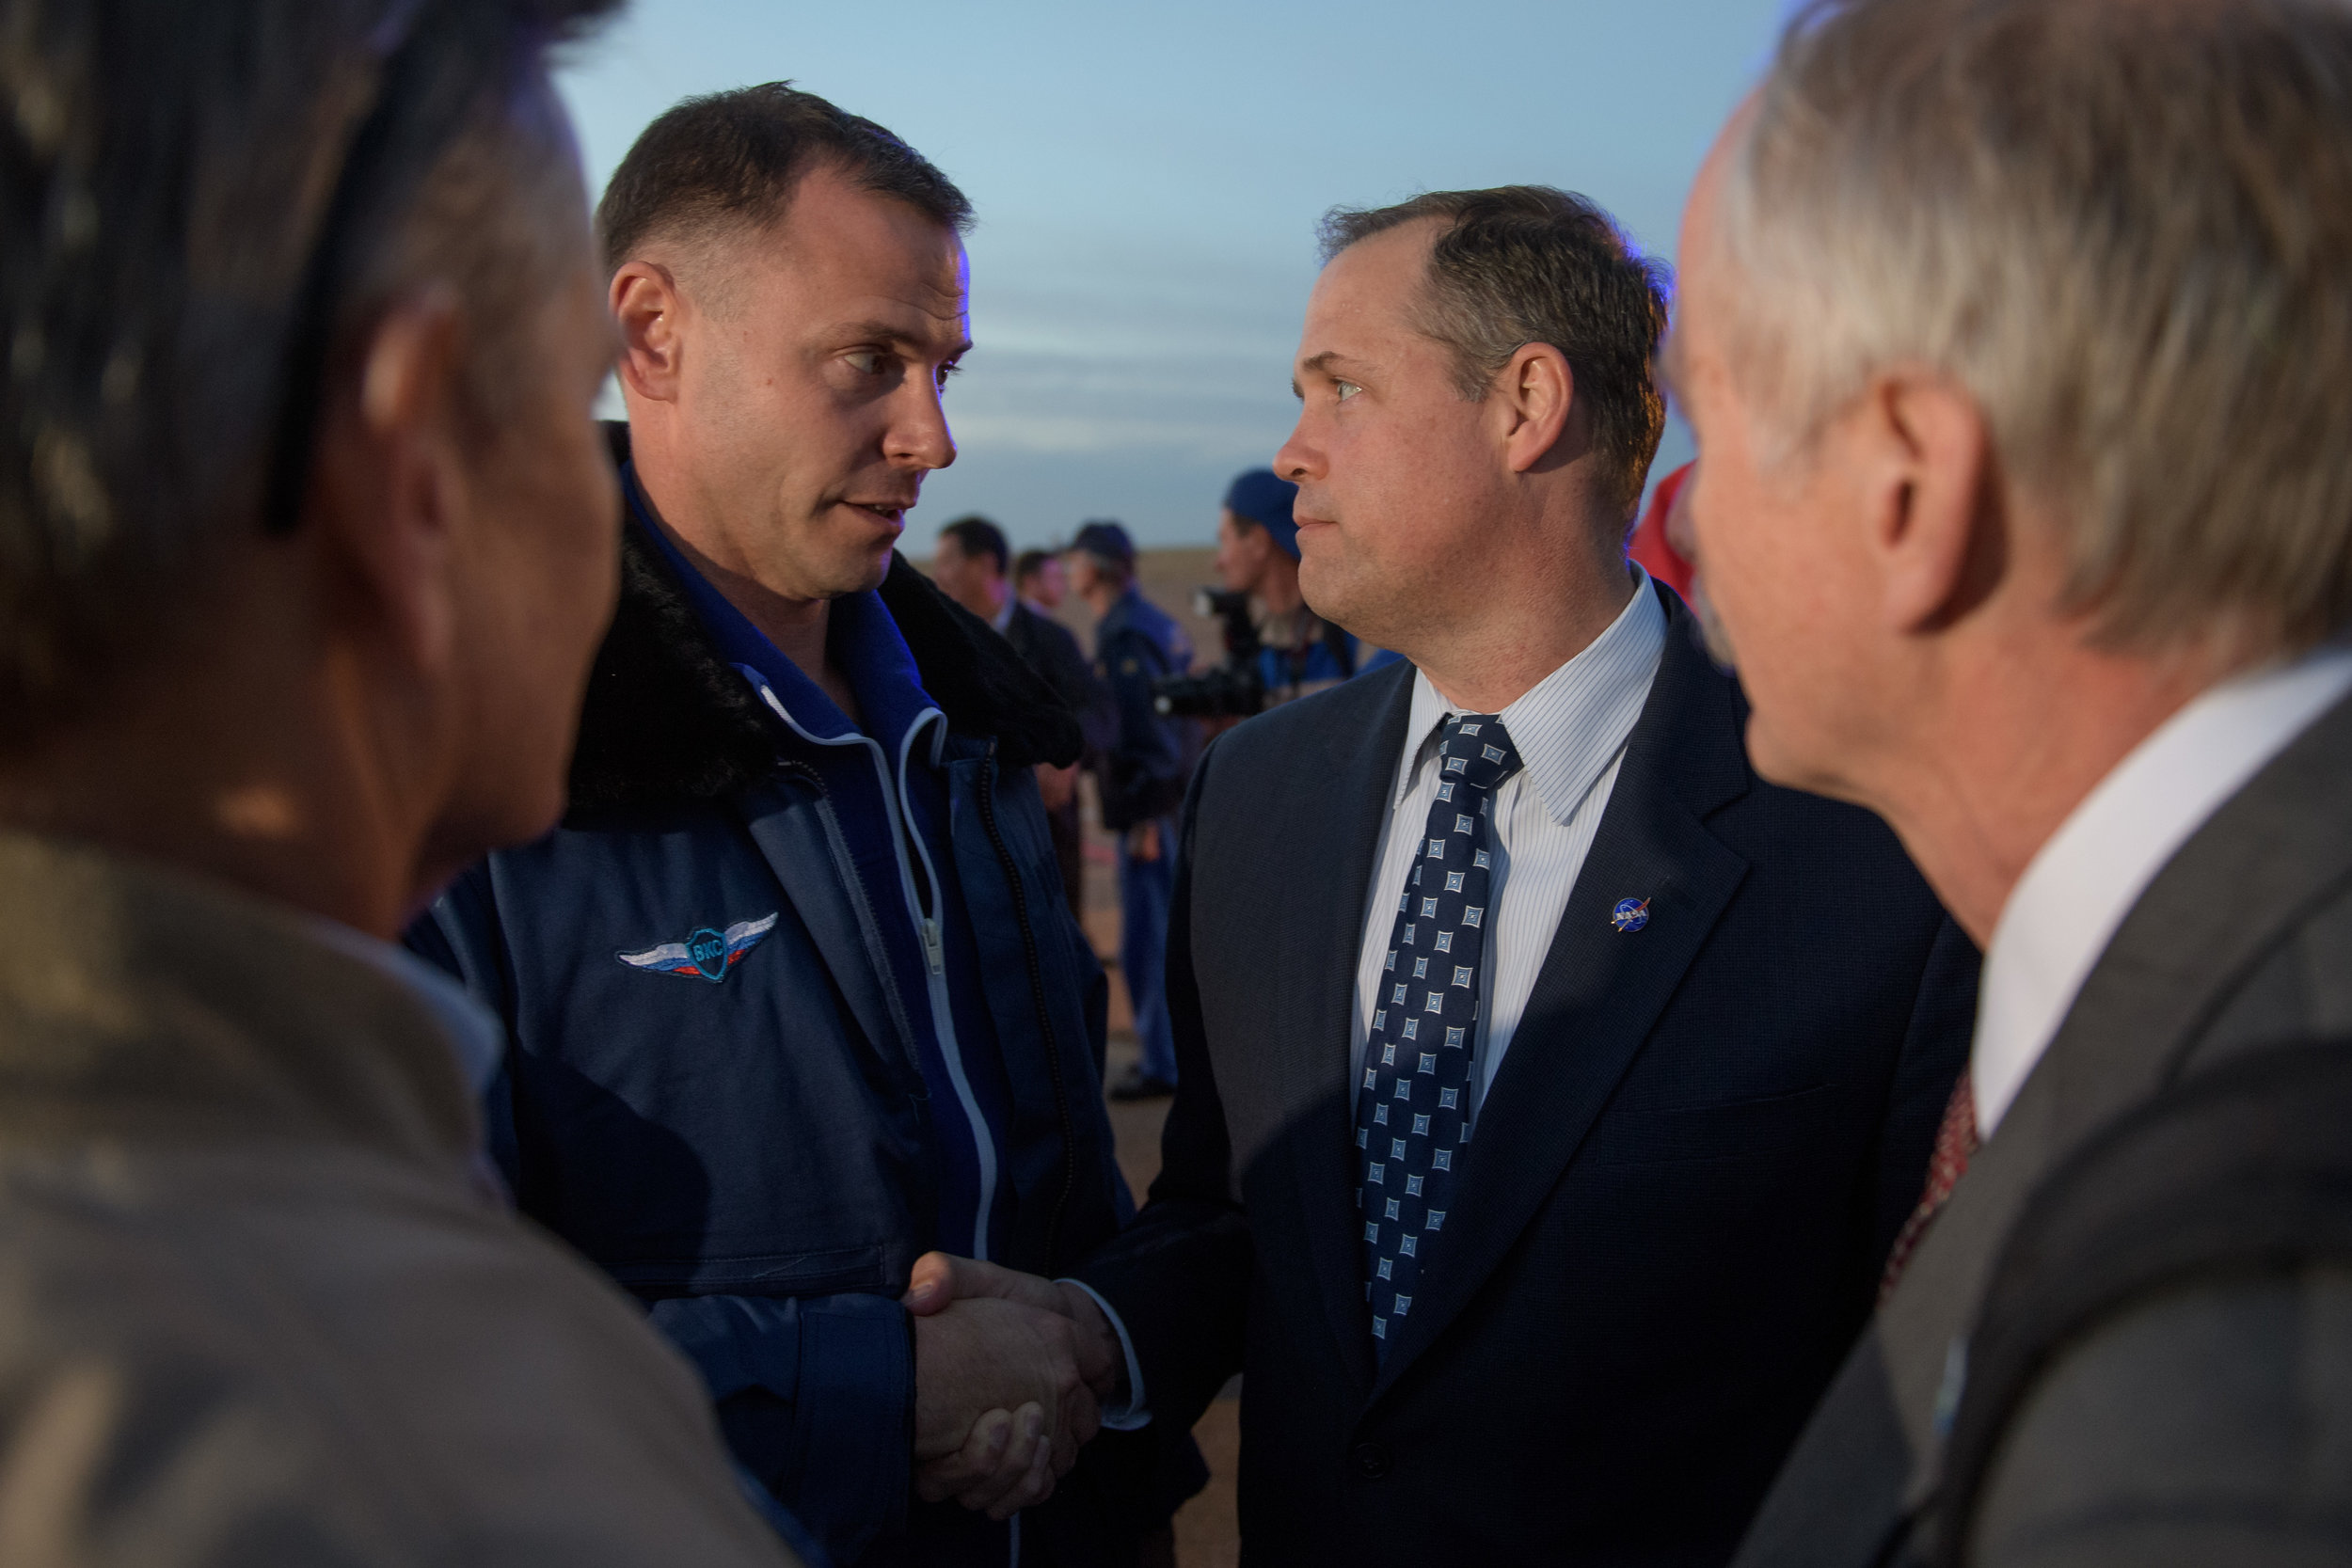 NASA Administrator Jim Bridenstine shakes Nick Hague's hand after being recovered following the Soyuz MS-10 in-flight launch abort. Credit: NASA/Bill Ingalls